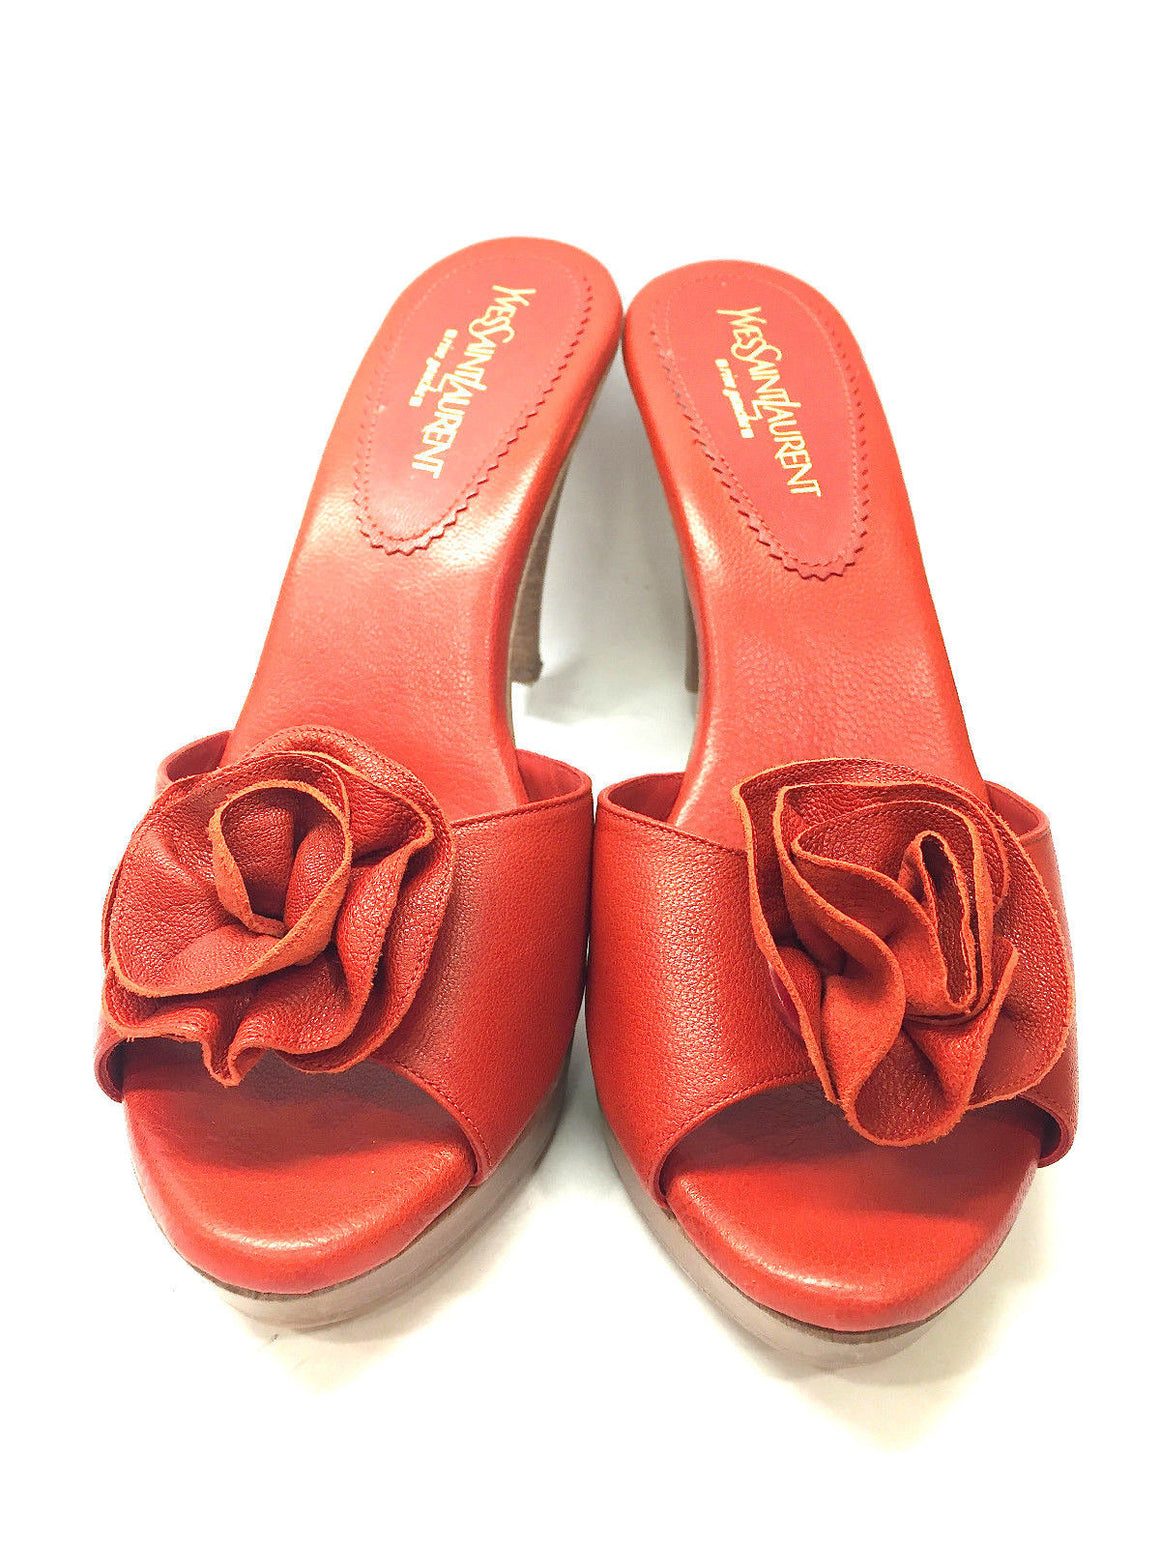 bisbiz.com YVES ST. LAURENT YSL  Burnt-orange Wooden Platform Heel Rosette Mules Sandals - Bis Luxury Resale